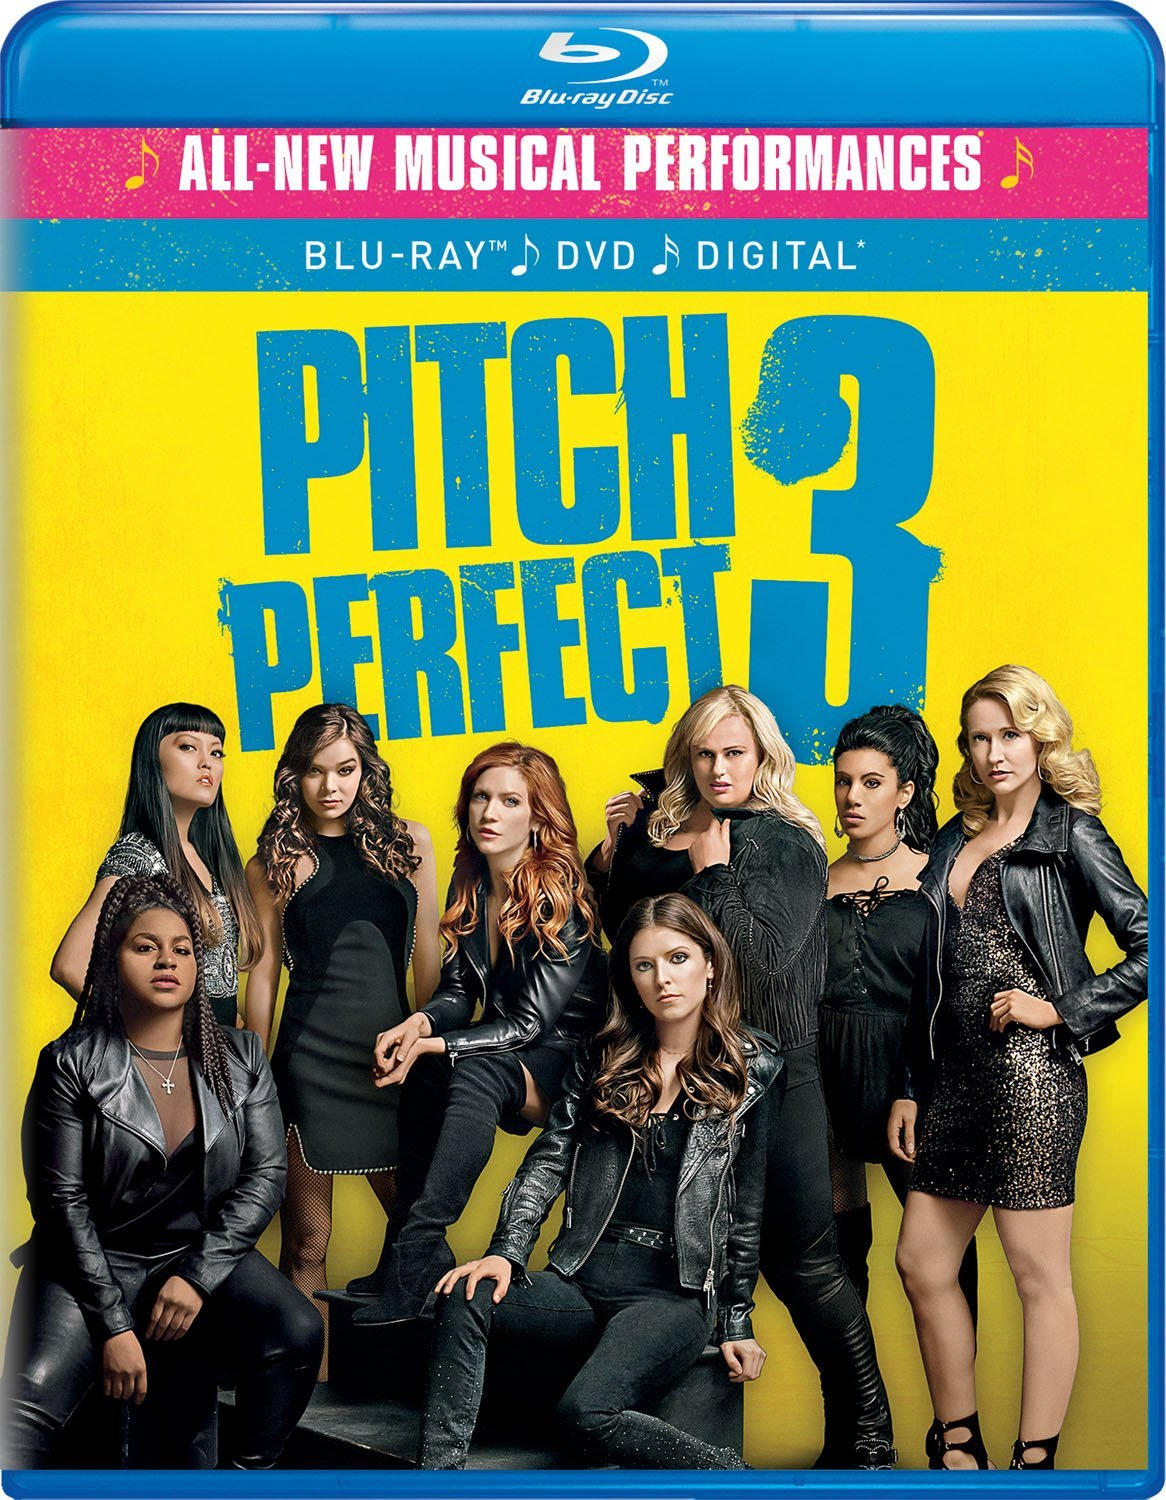 Pitch Perfect 3 on Blu-ray